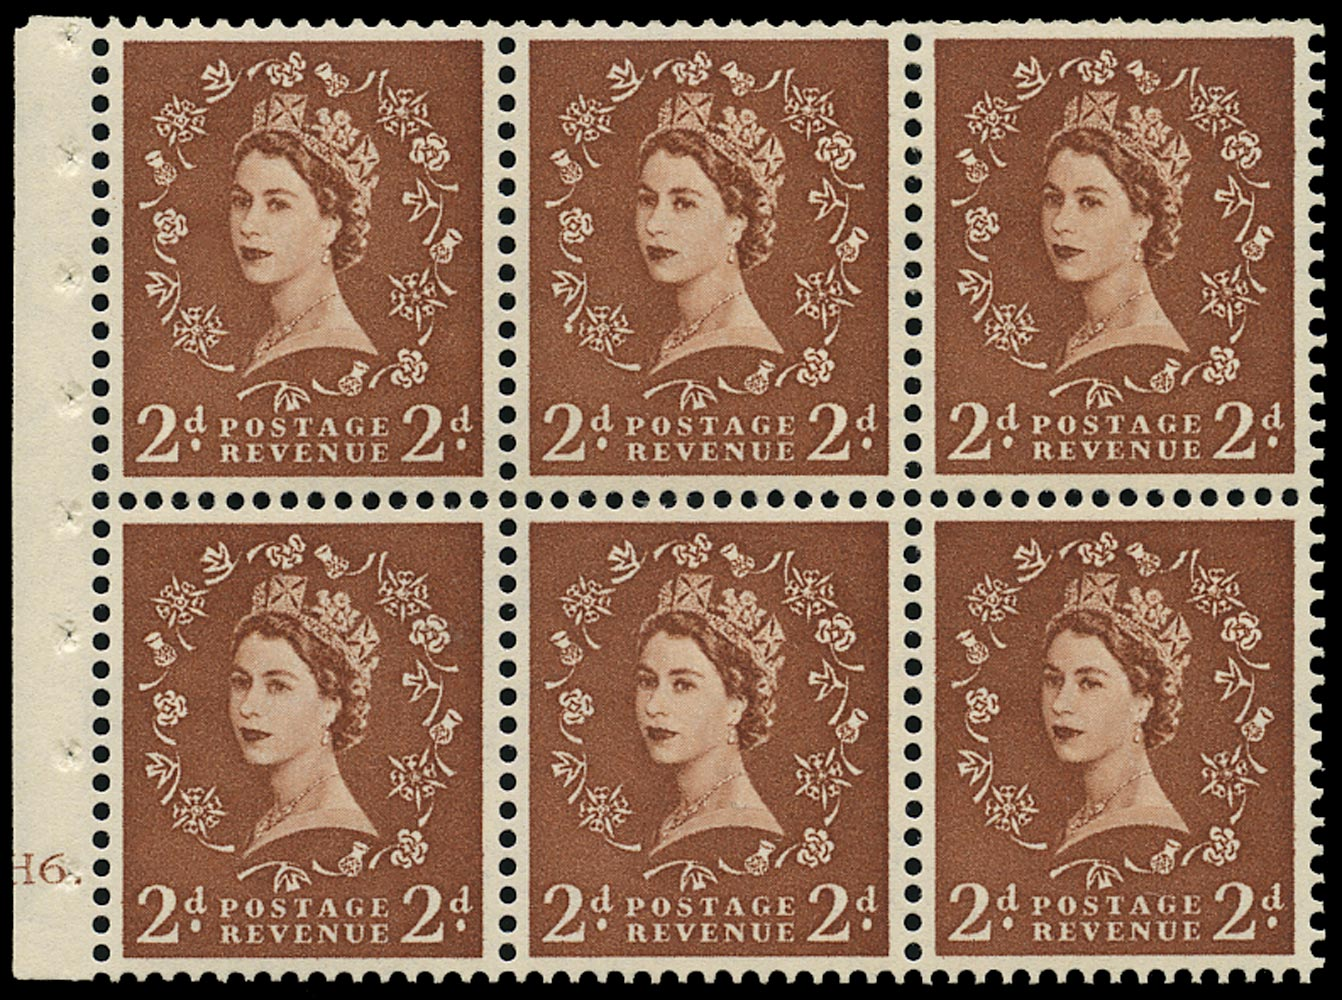 GB 1956  SG543bl Booklet pane - Cylinder H6 (Dot) with 'Daffodil stem flaw' variety